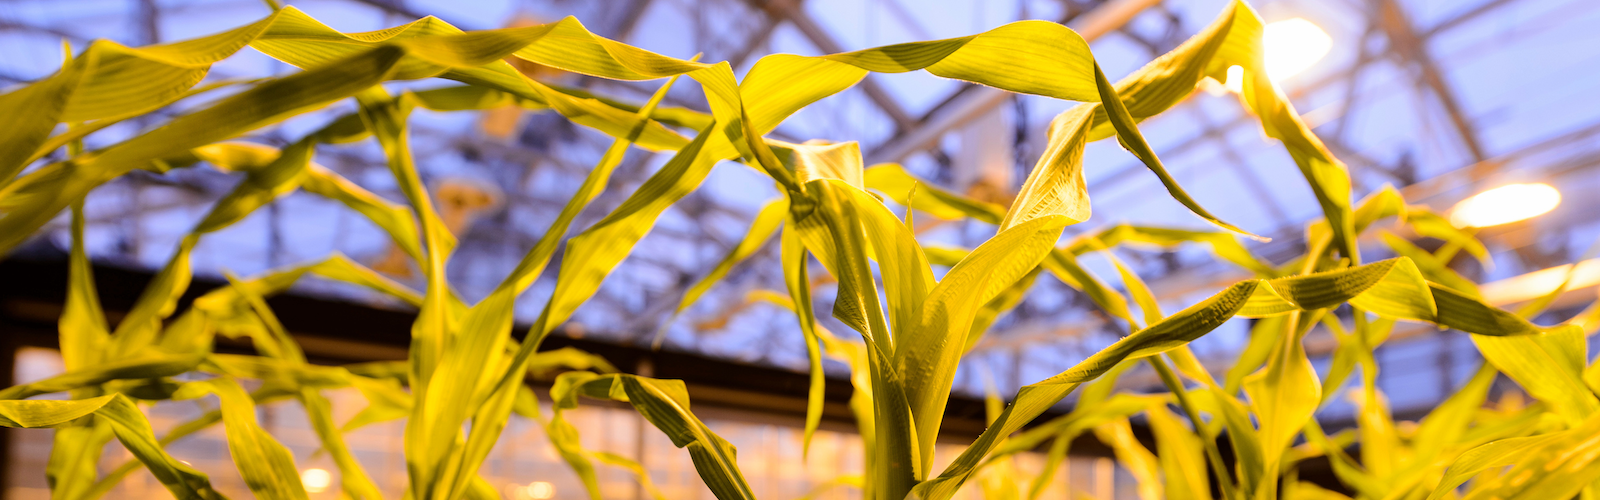 Corn growing in campus greenhouse